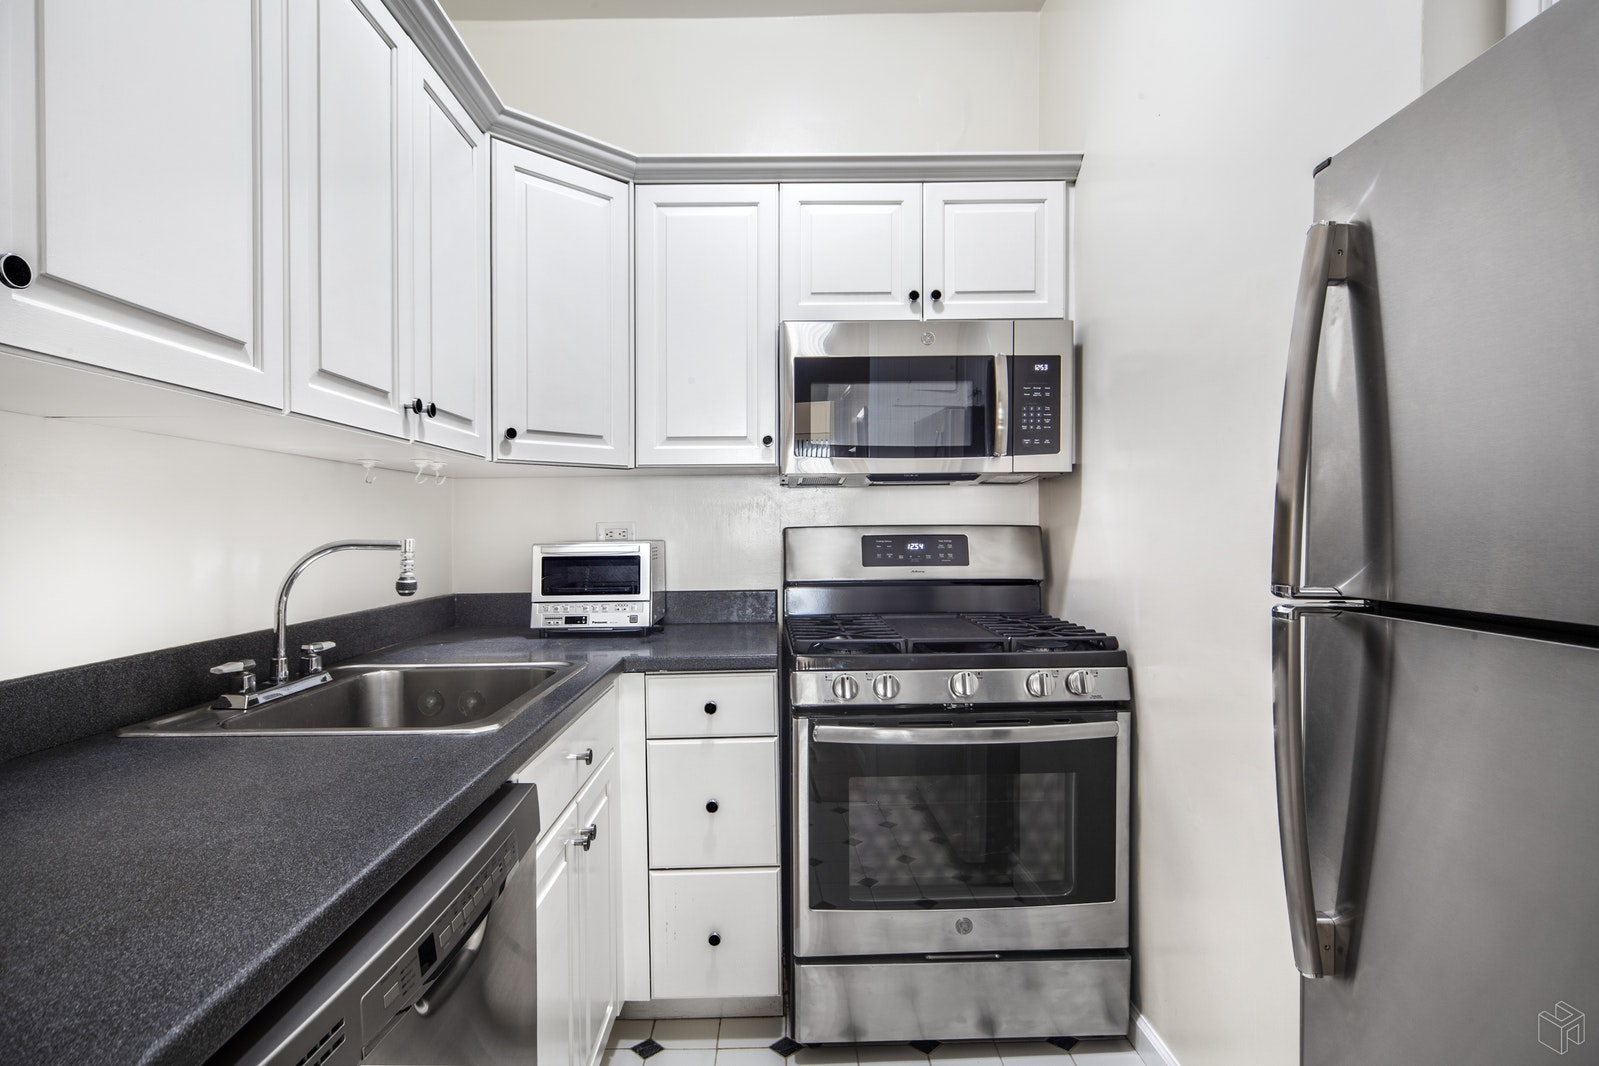 165 WEST 66TH STREET 12X, Upper West Side, $765,000, Web #: 17467678